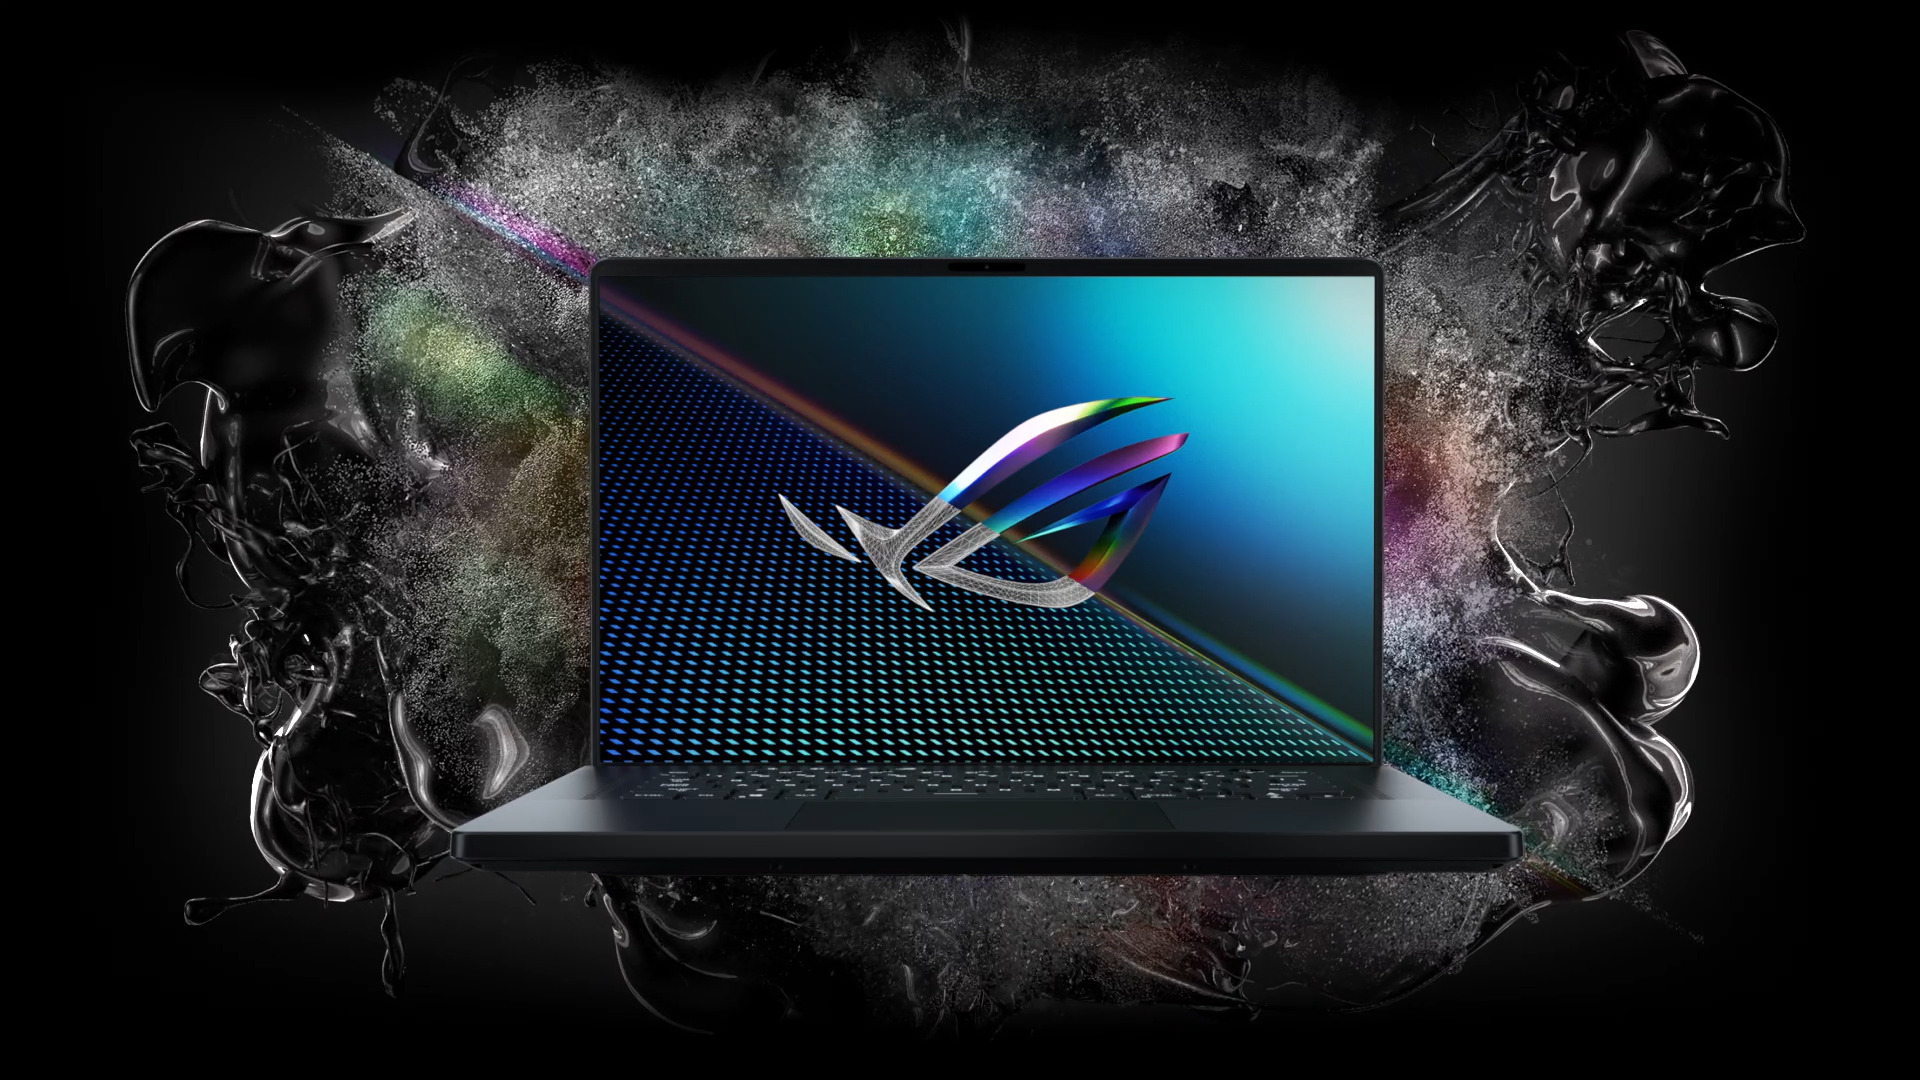 Asus ROG Zephyrus M16: a retailer lists what appears to be an entry-level version of the new gaming laptop